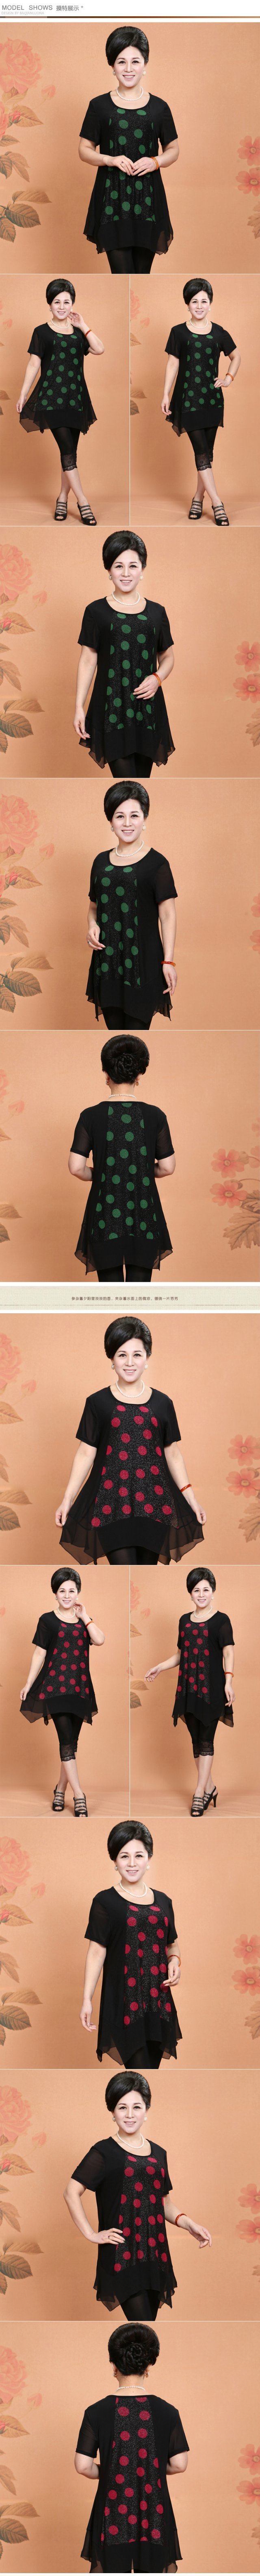 bce5d8c585 US $30.32 |2014 Limited Direct Selling Freeshipping Silk Dot Party Dresses  Elderly Women's Dress Code Fashion Mother Summer Wear Sleeved. -in Dresses  ...